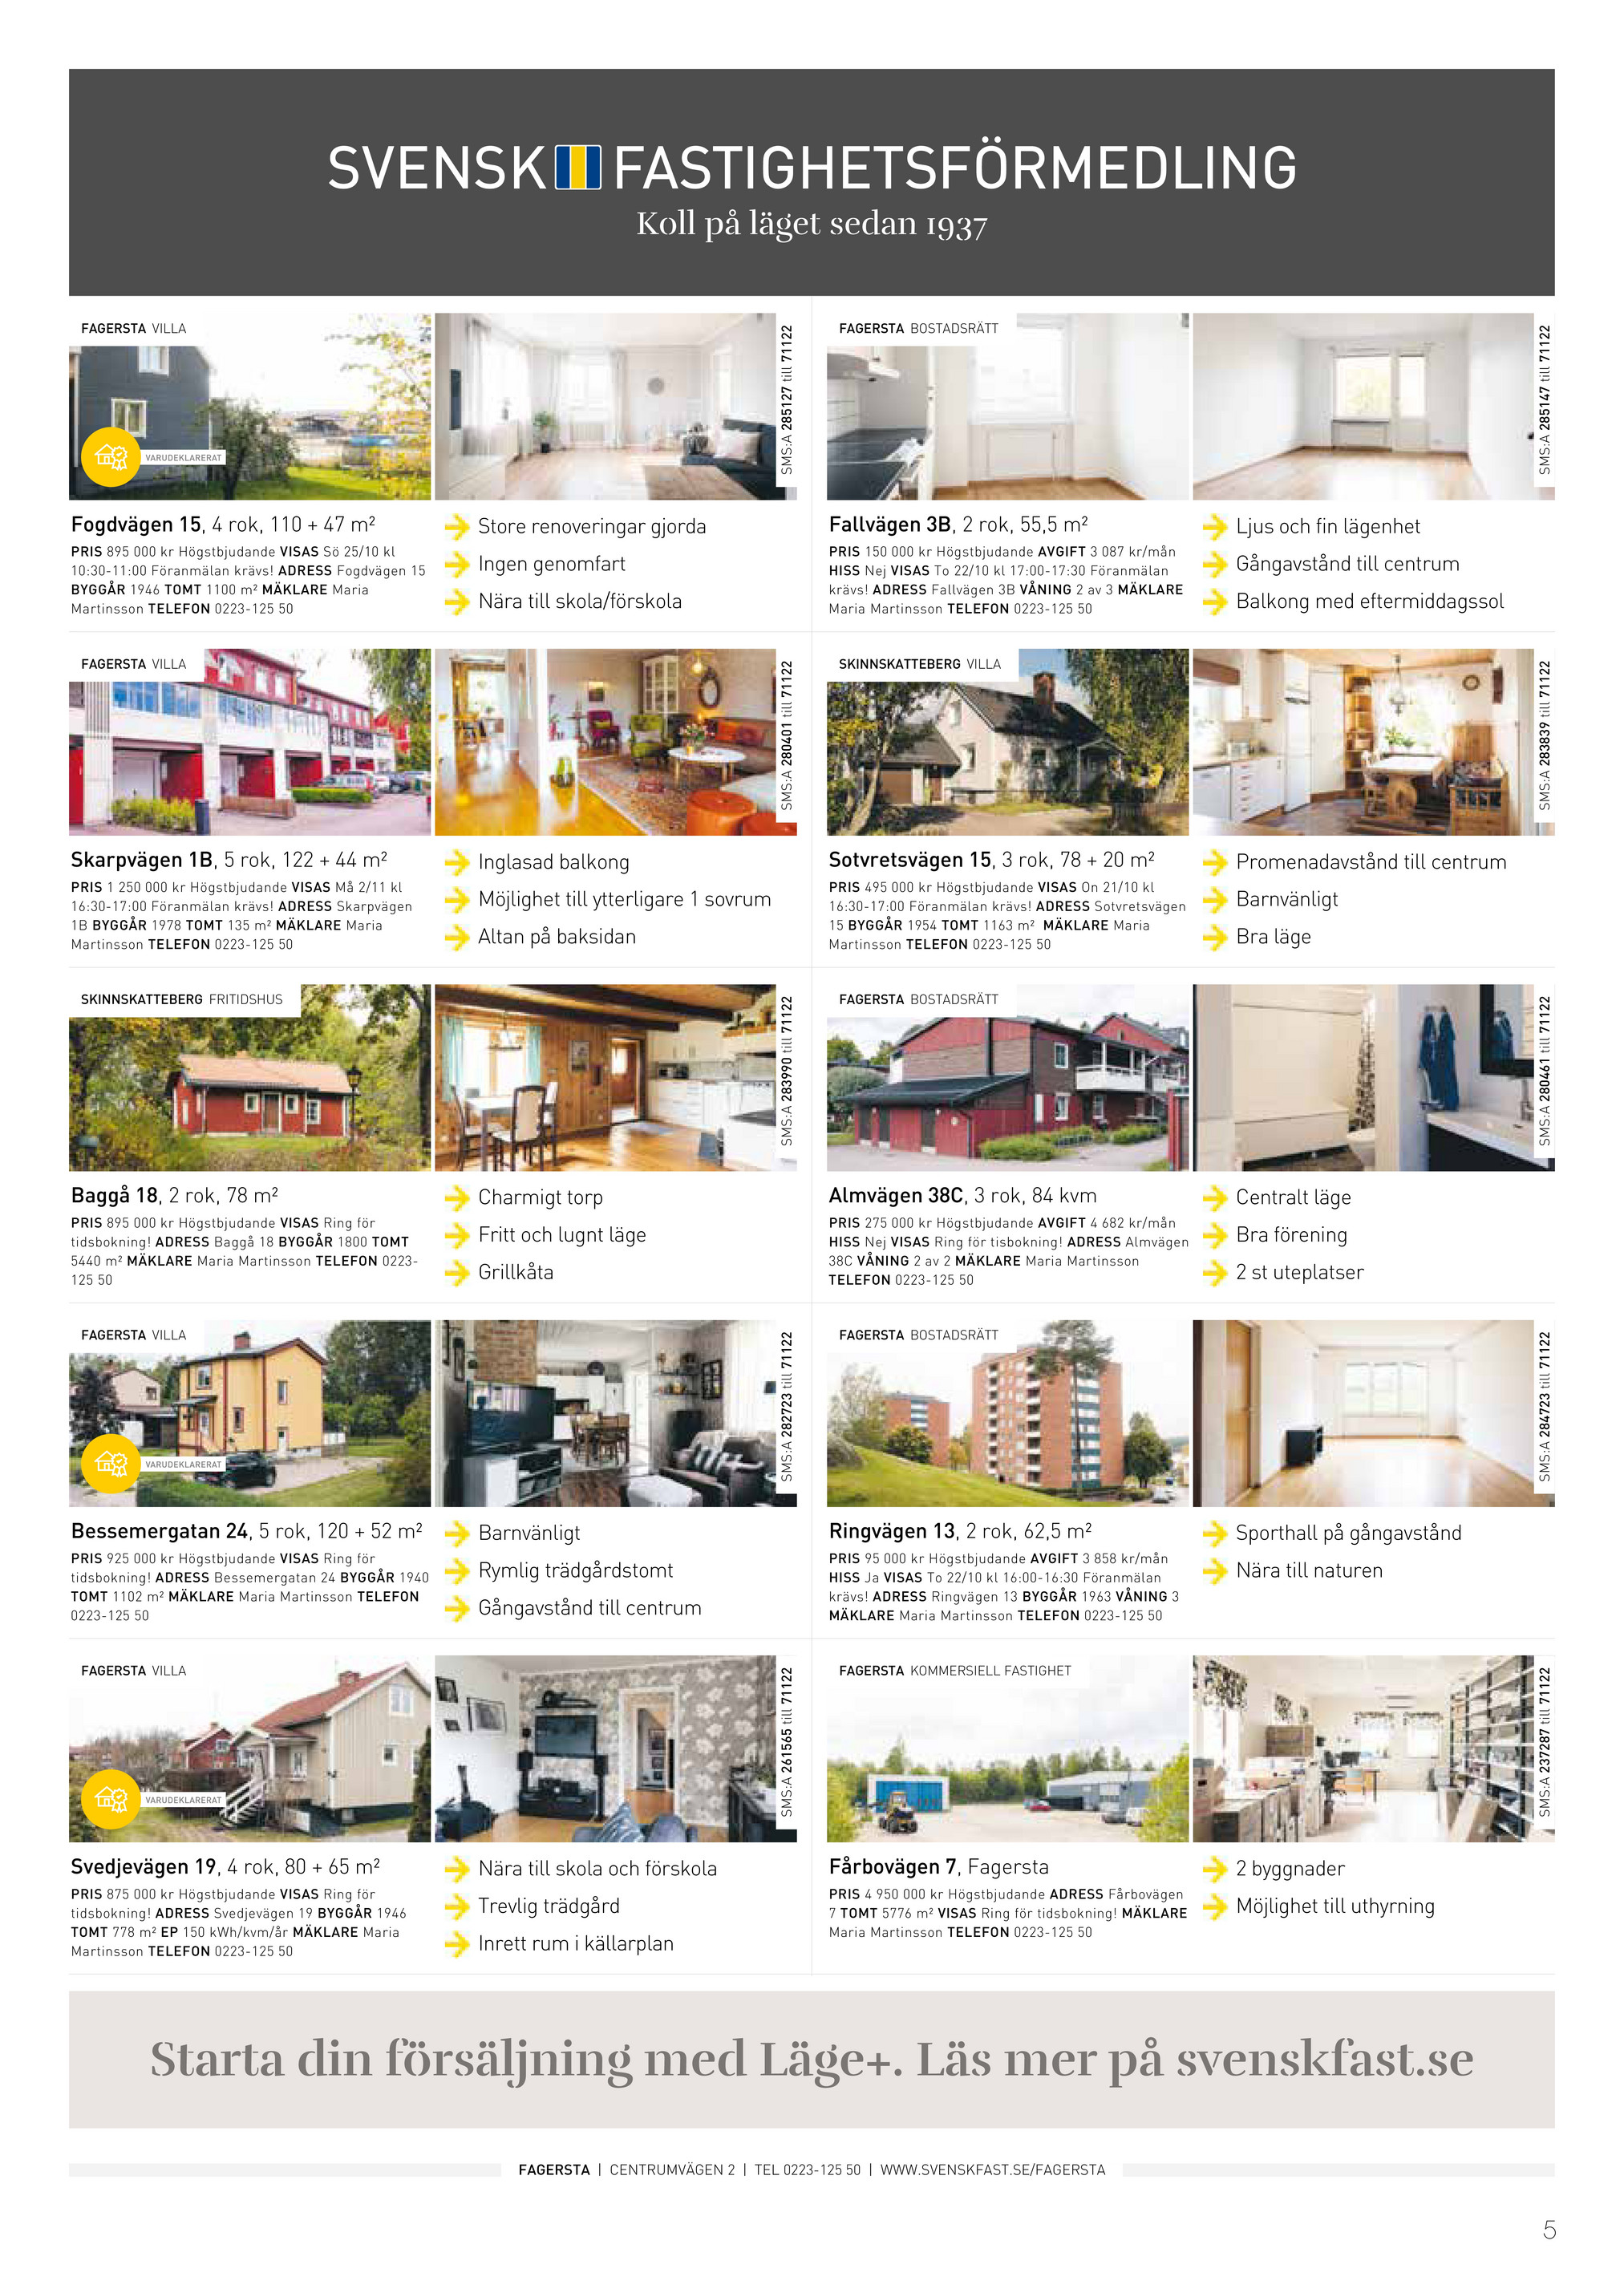 Picture of: My Publications Borsentidningen V 43 Sida 2 3 Created With Publitas Com